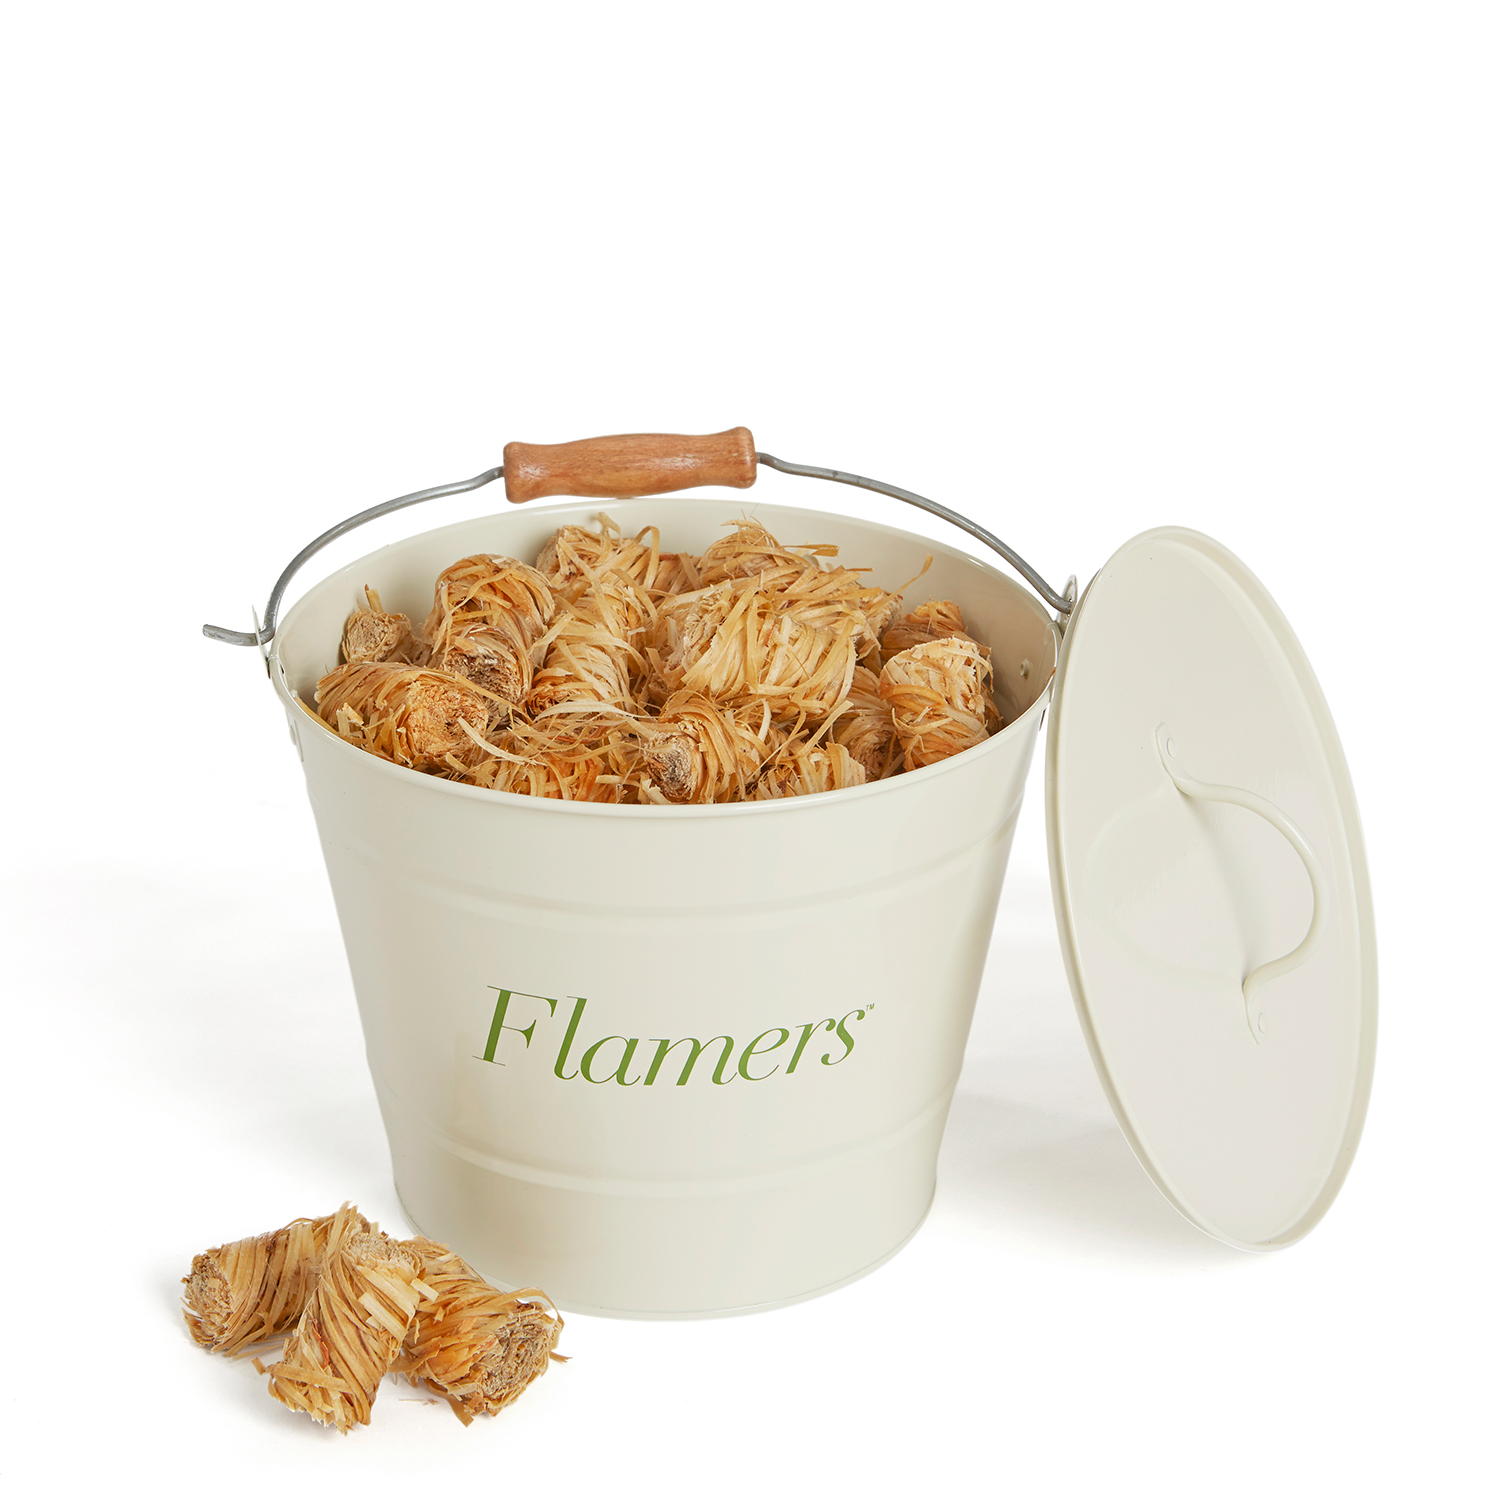 Flamers Bucket